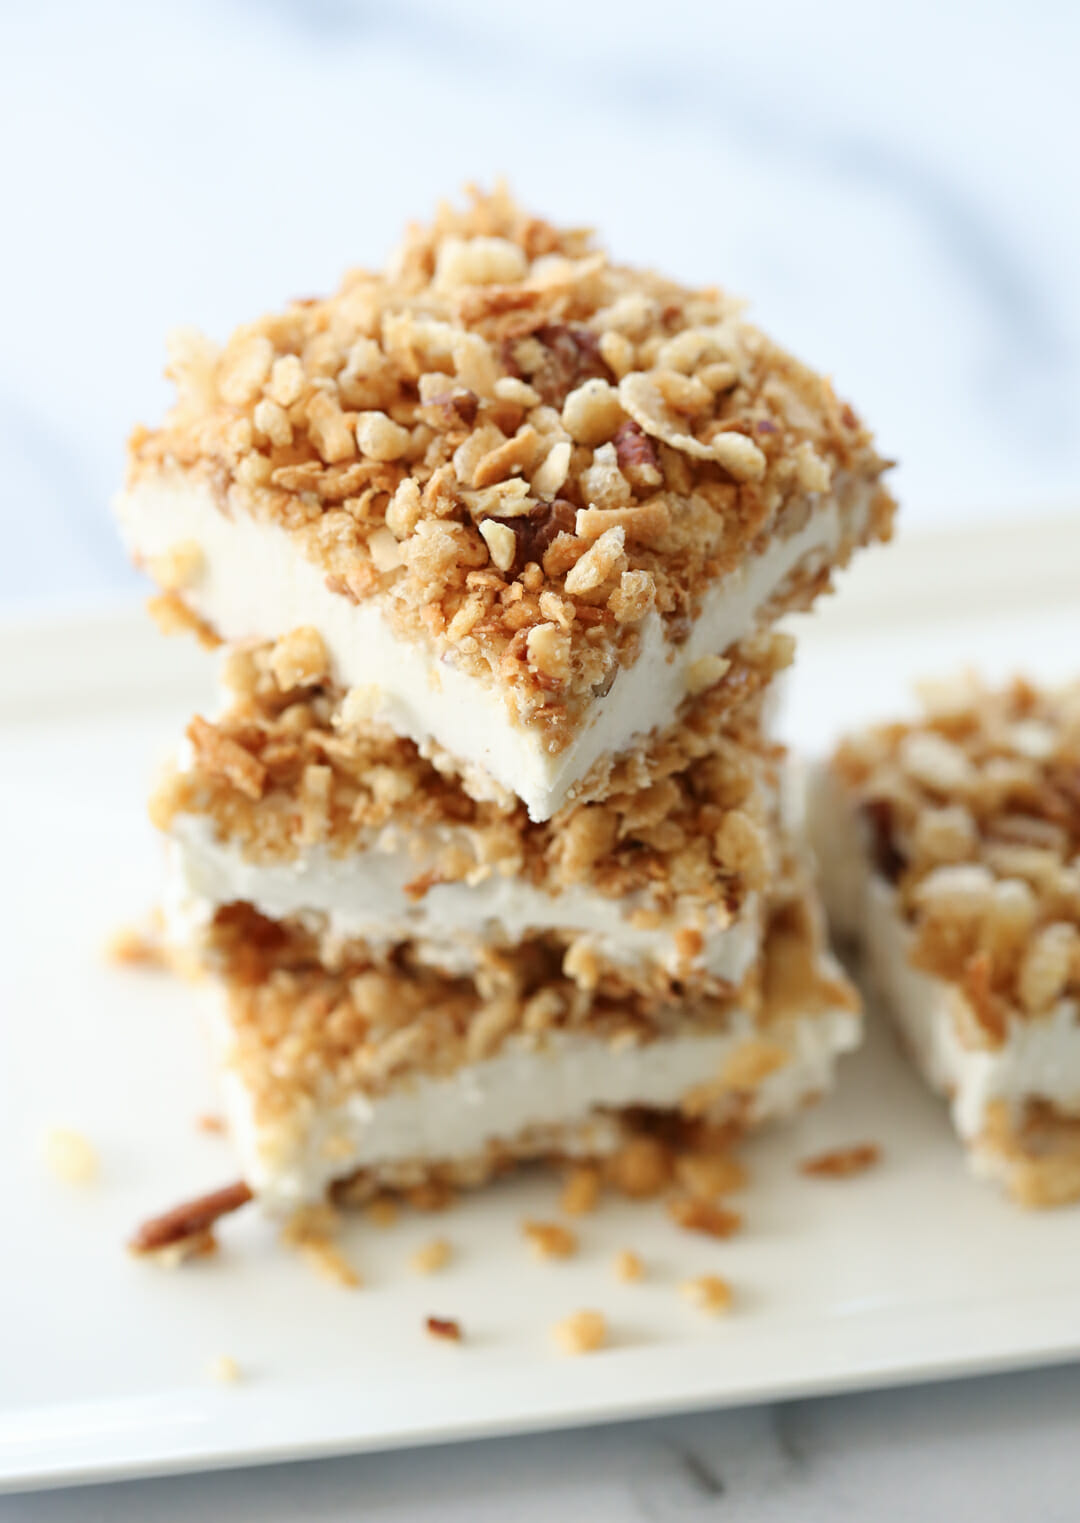 Stacked Fried Ice Cream Bars